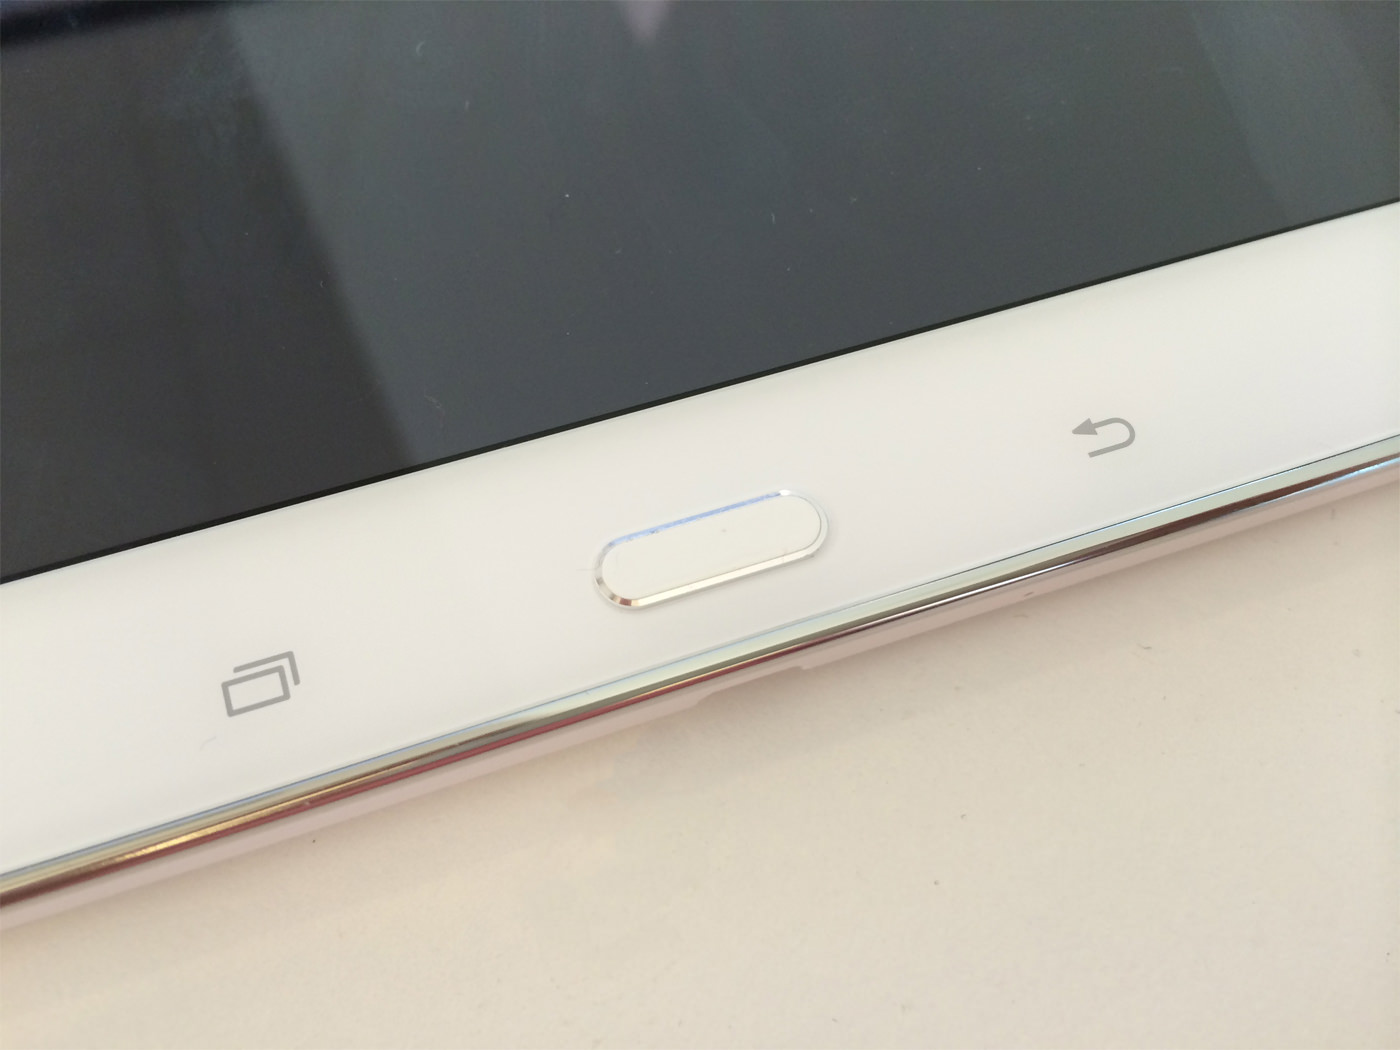 Raised button on the Samsung Galaxy Tablet